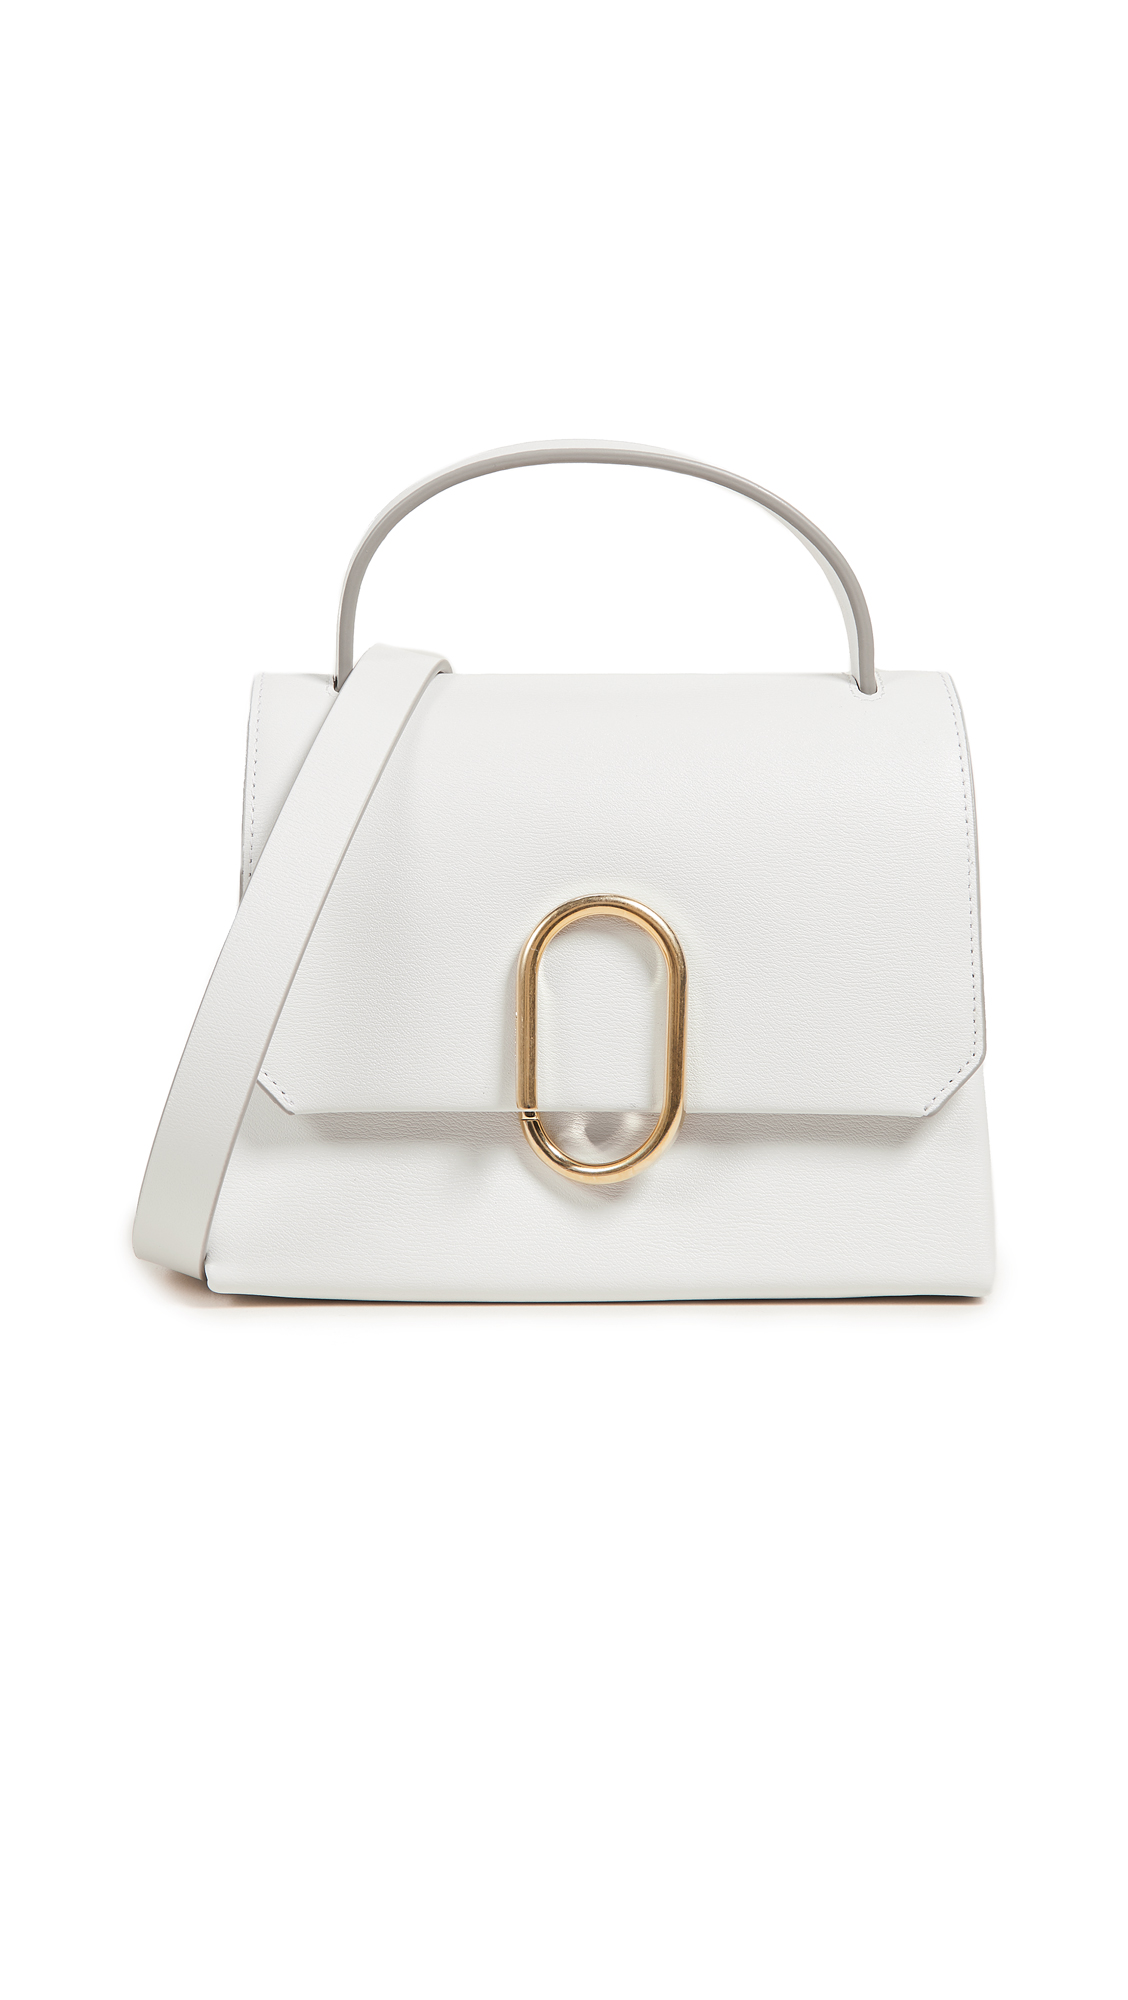 3.1 Phillip Lim Alix Mini Top Handle Satchel - Antique White